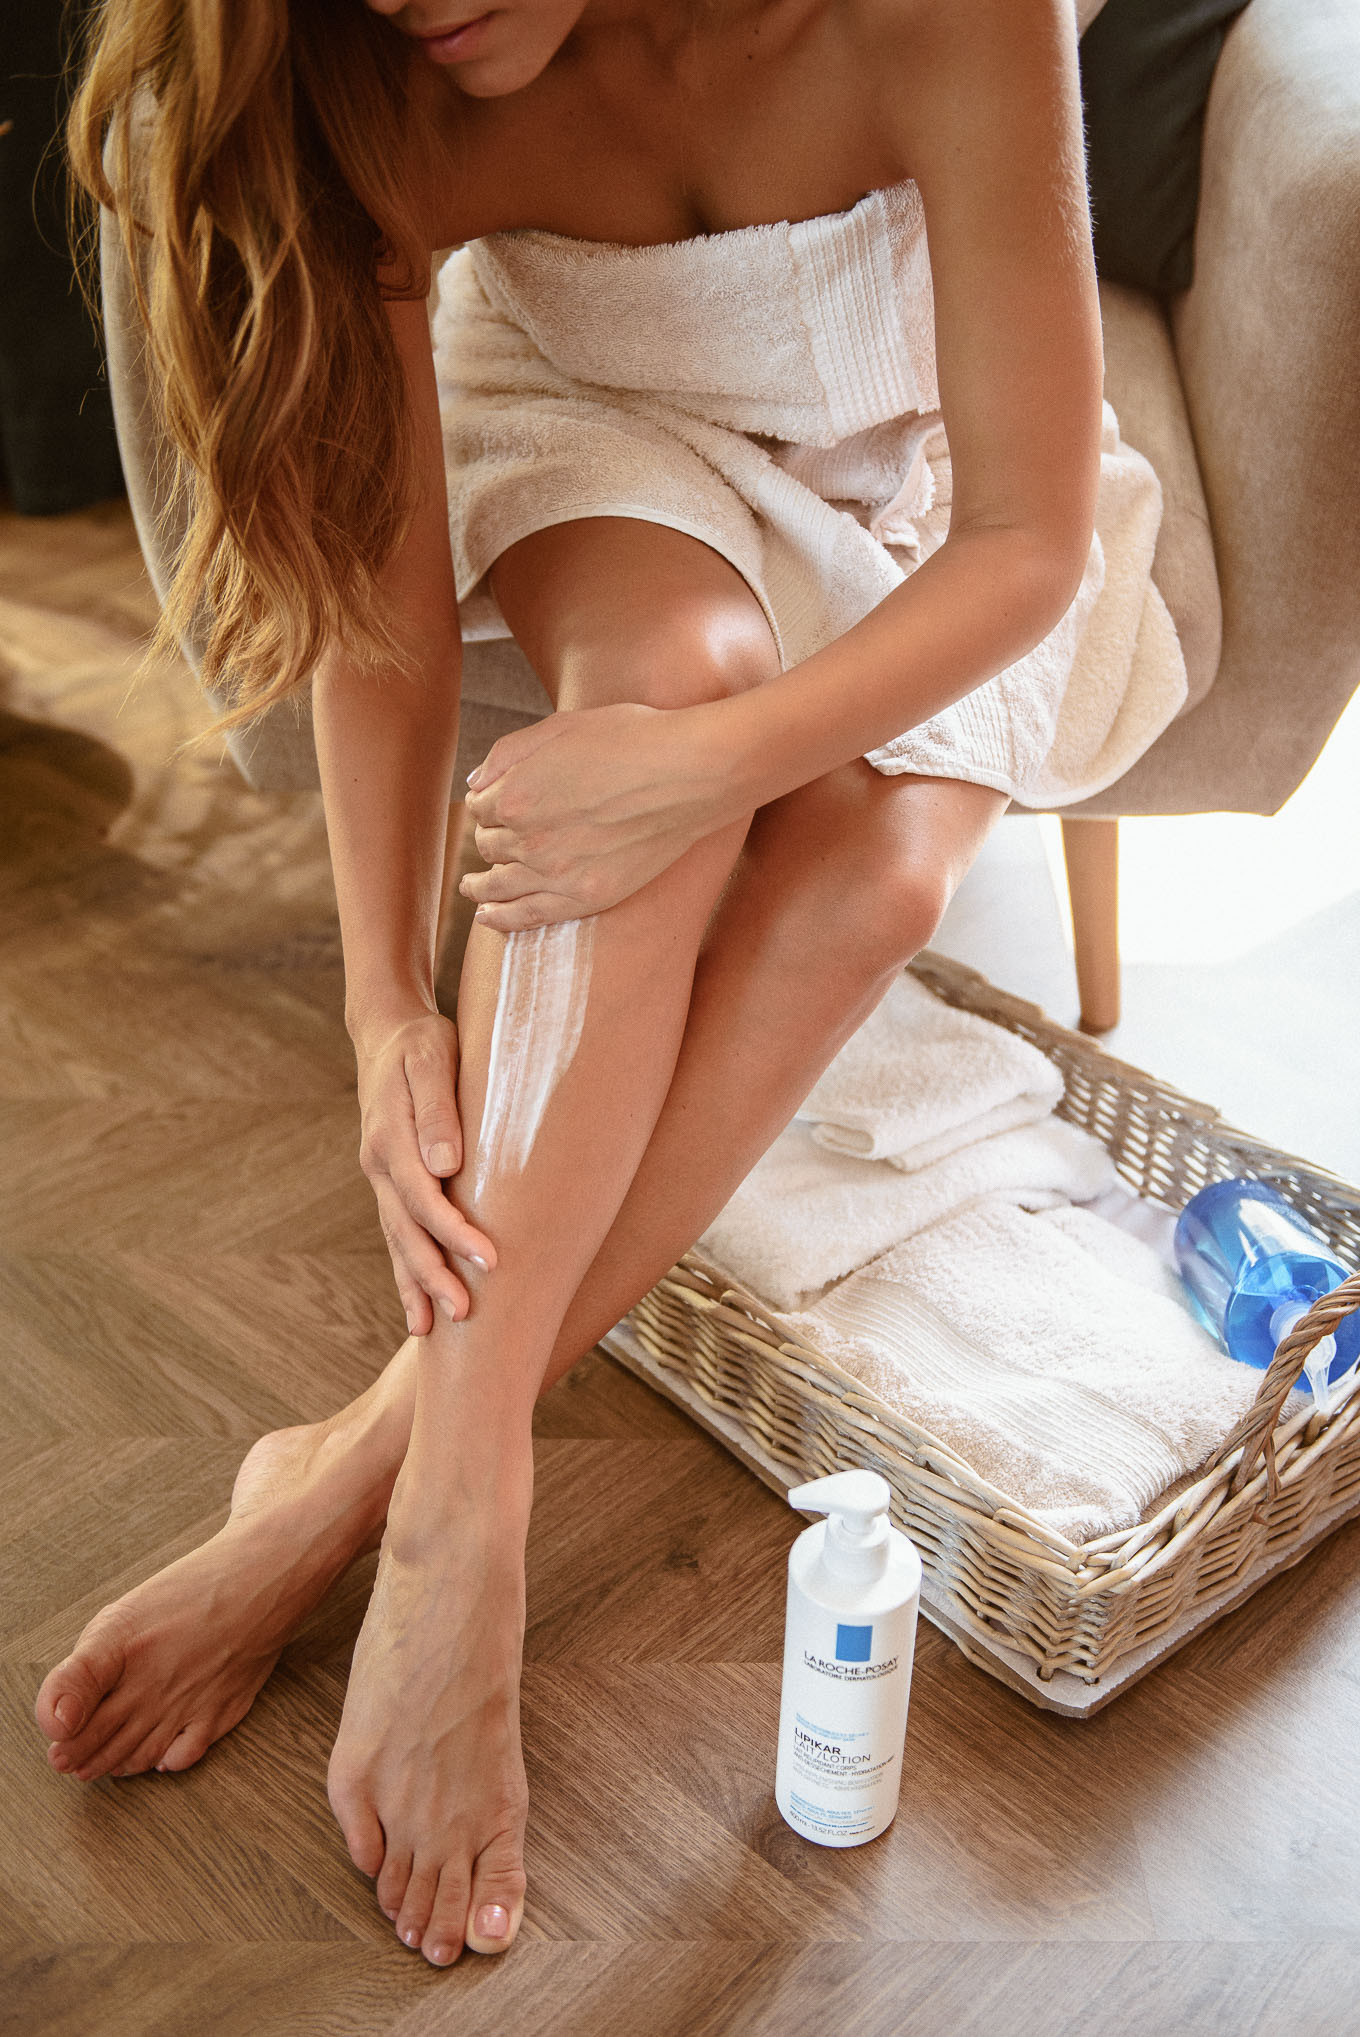 using La roche body Lotion